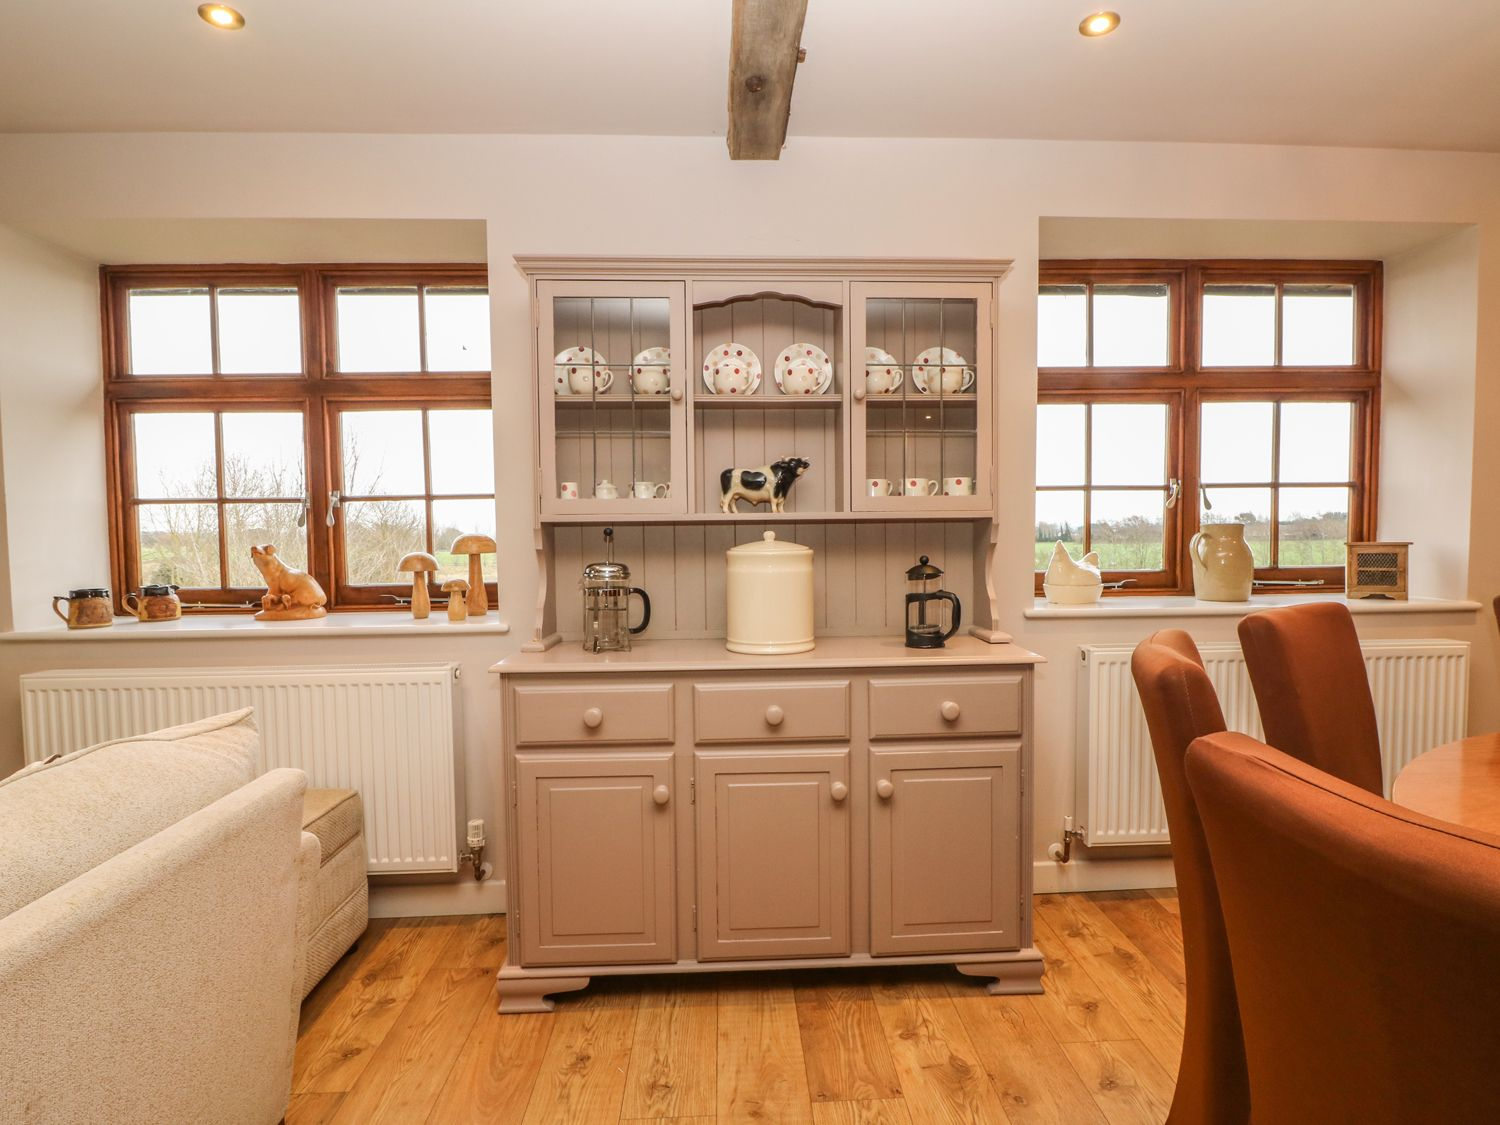 Hop House in Oad Street near Sittingbourne - sleeps 14 people